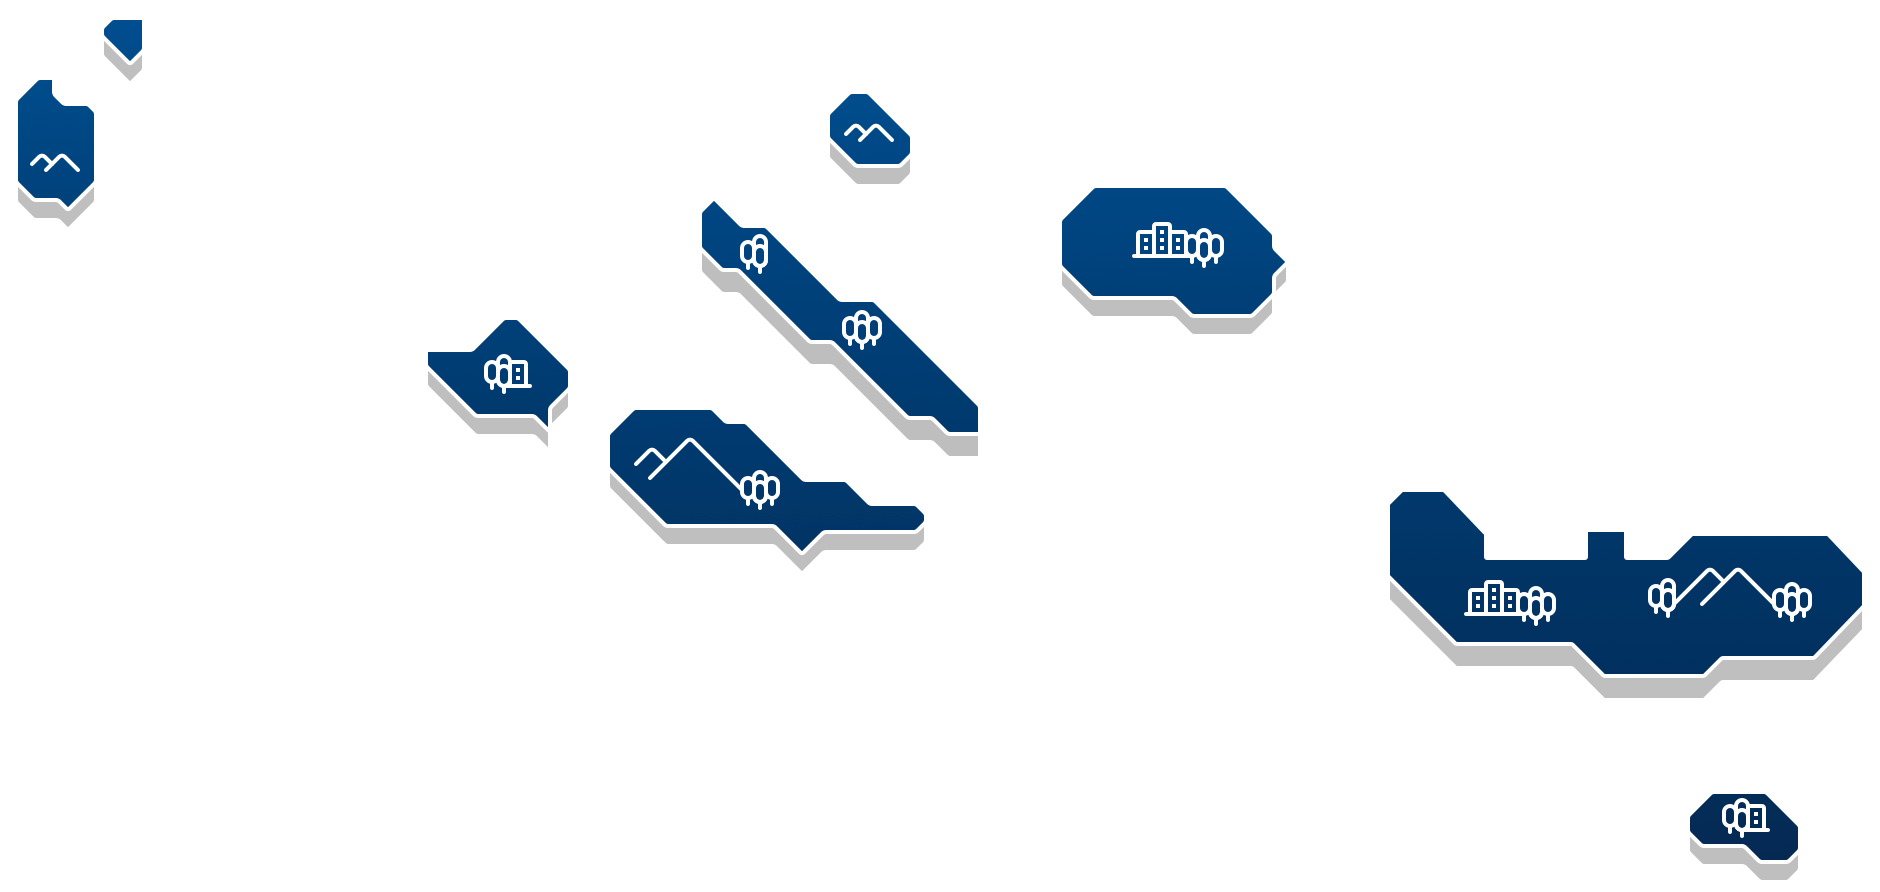 Illustration of the Azores Islands